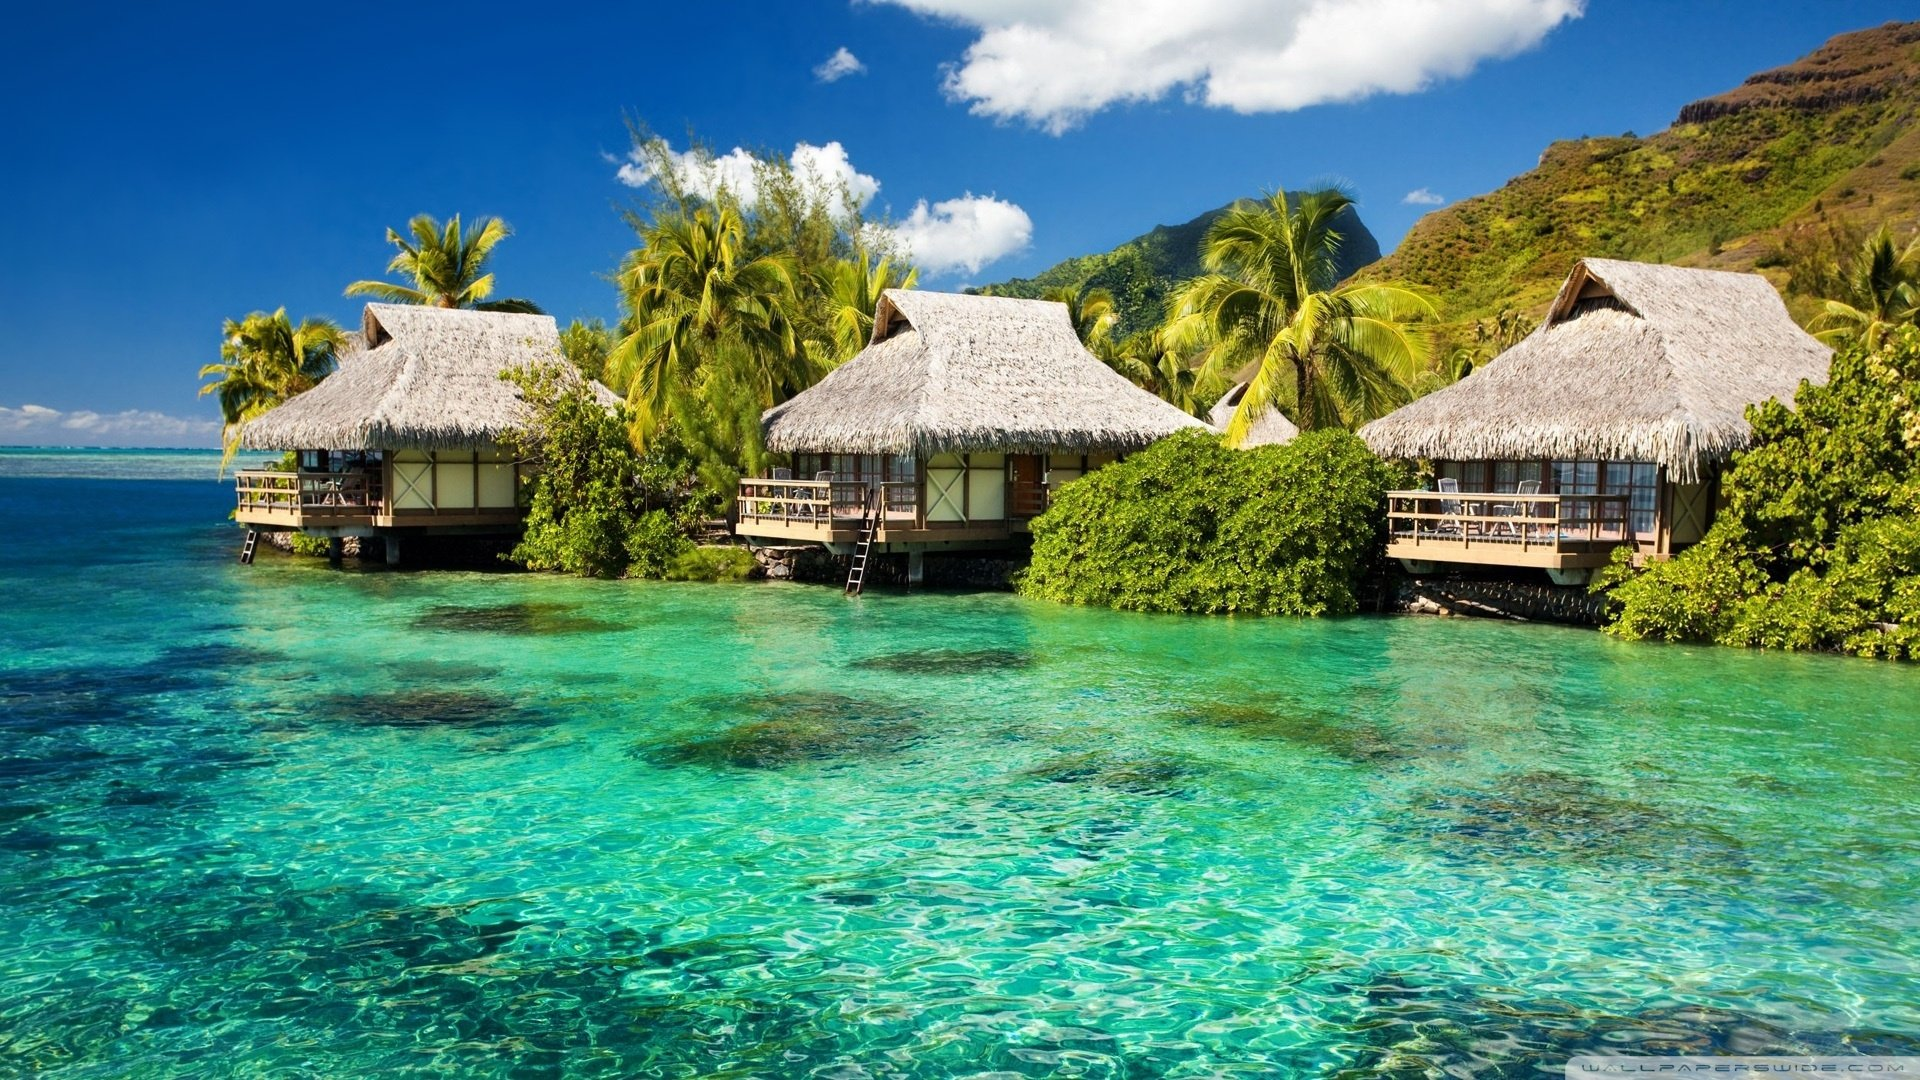 Download Water Bungalows On A Tropical Island Wallpaper